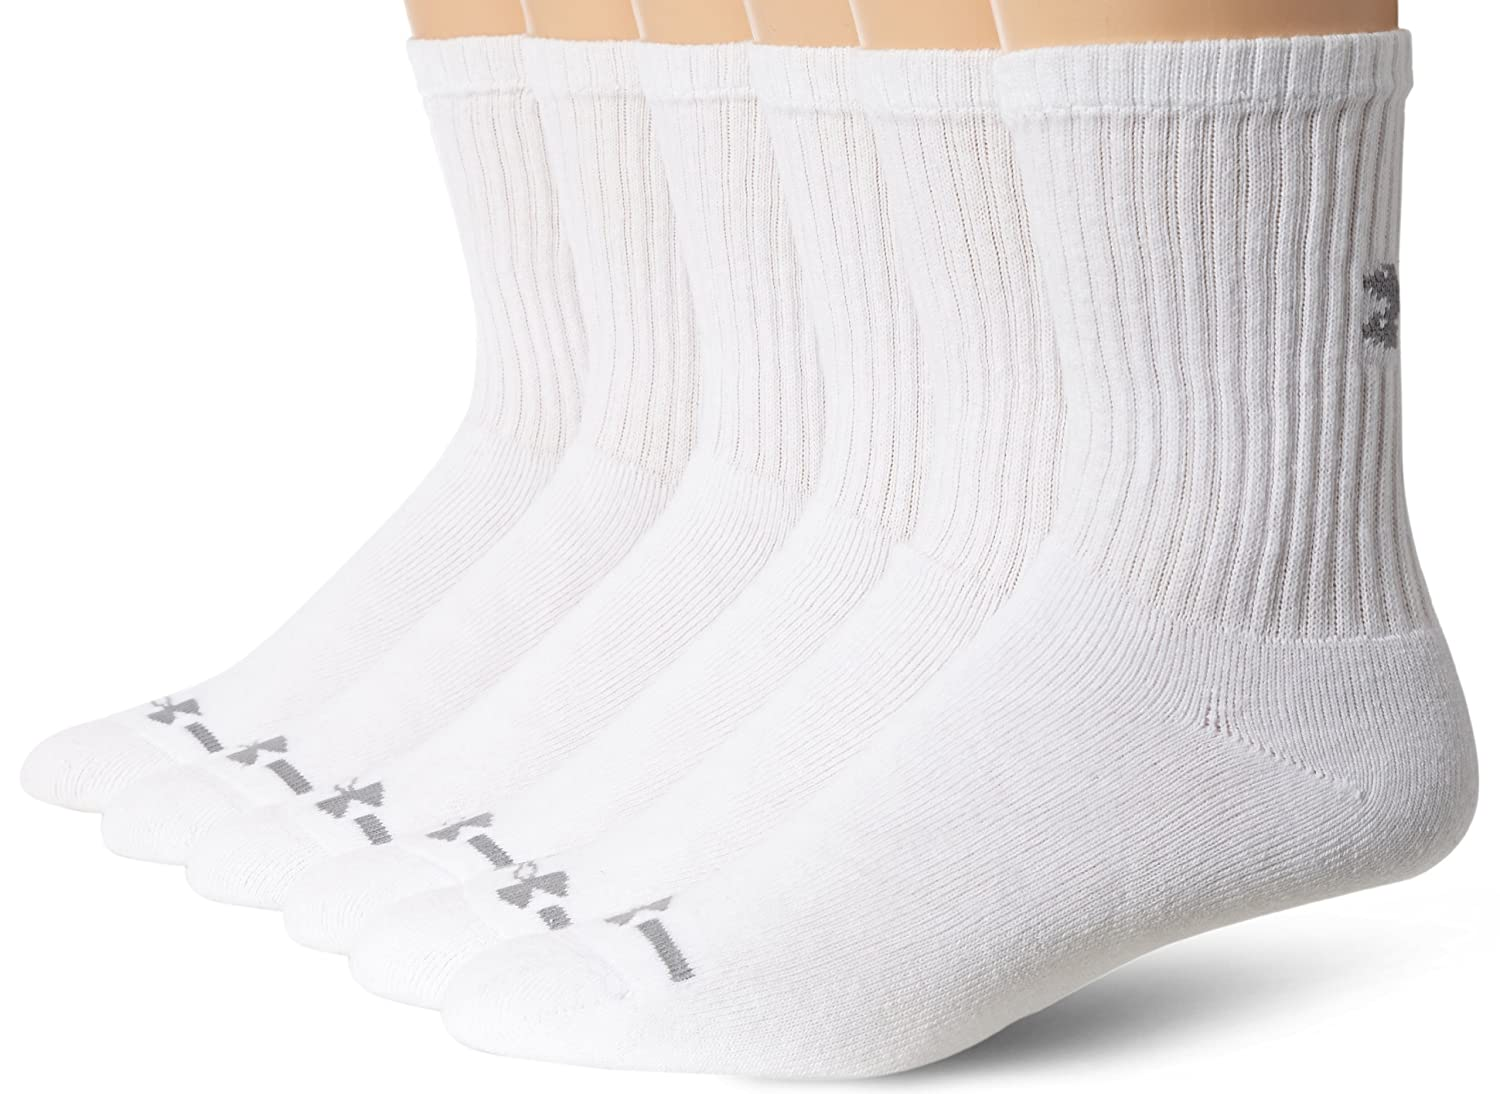 Under Armour Men's Charged Cotton Crew Socks (6 Pack) Under Armour Socks